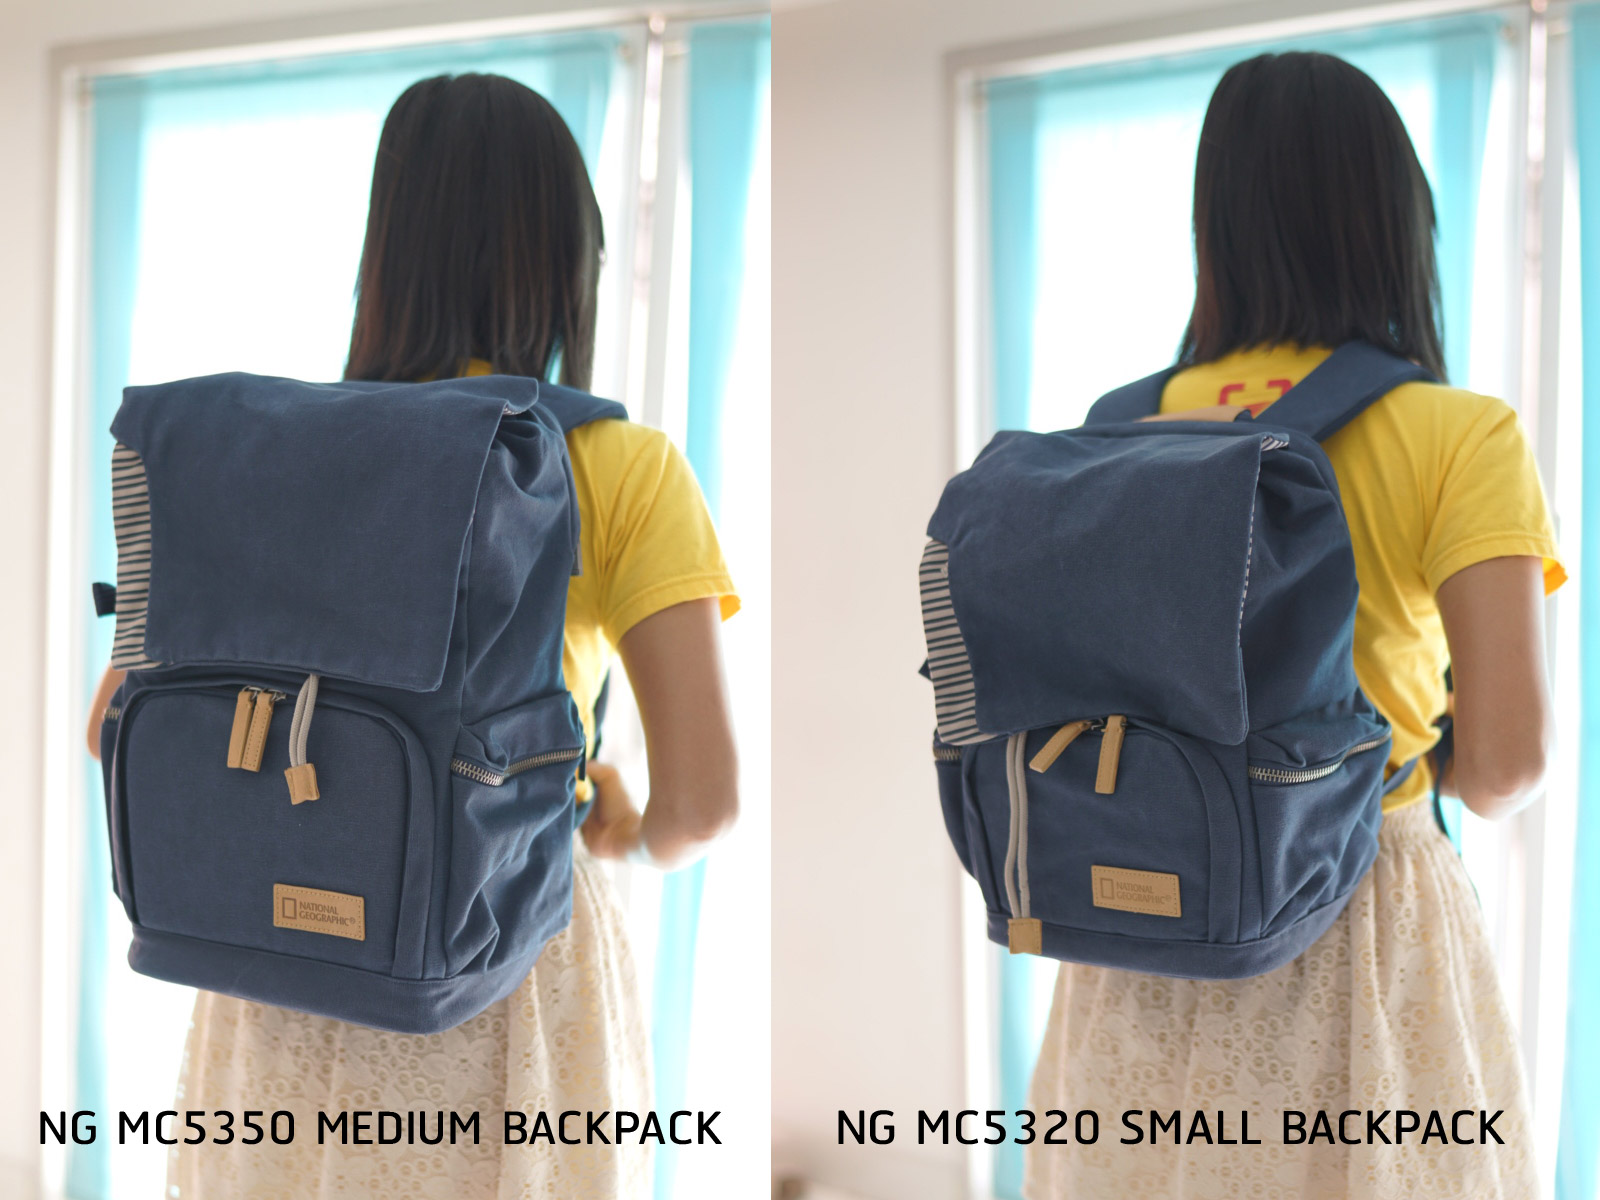 a442d415c3ace กระเป๋ากล้อง National Geographic The Mediterranean Medium Backpack